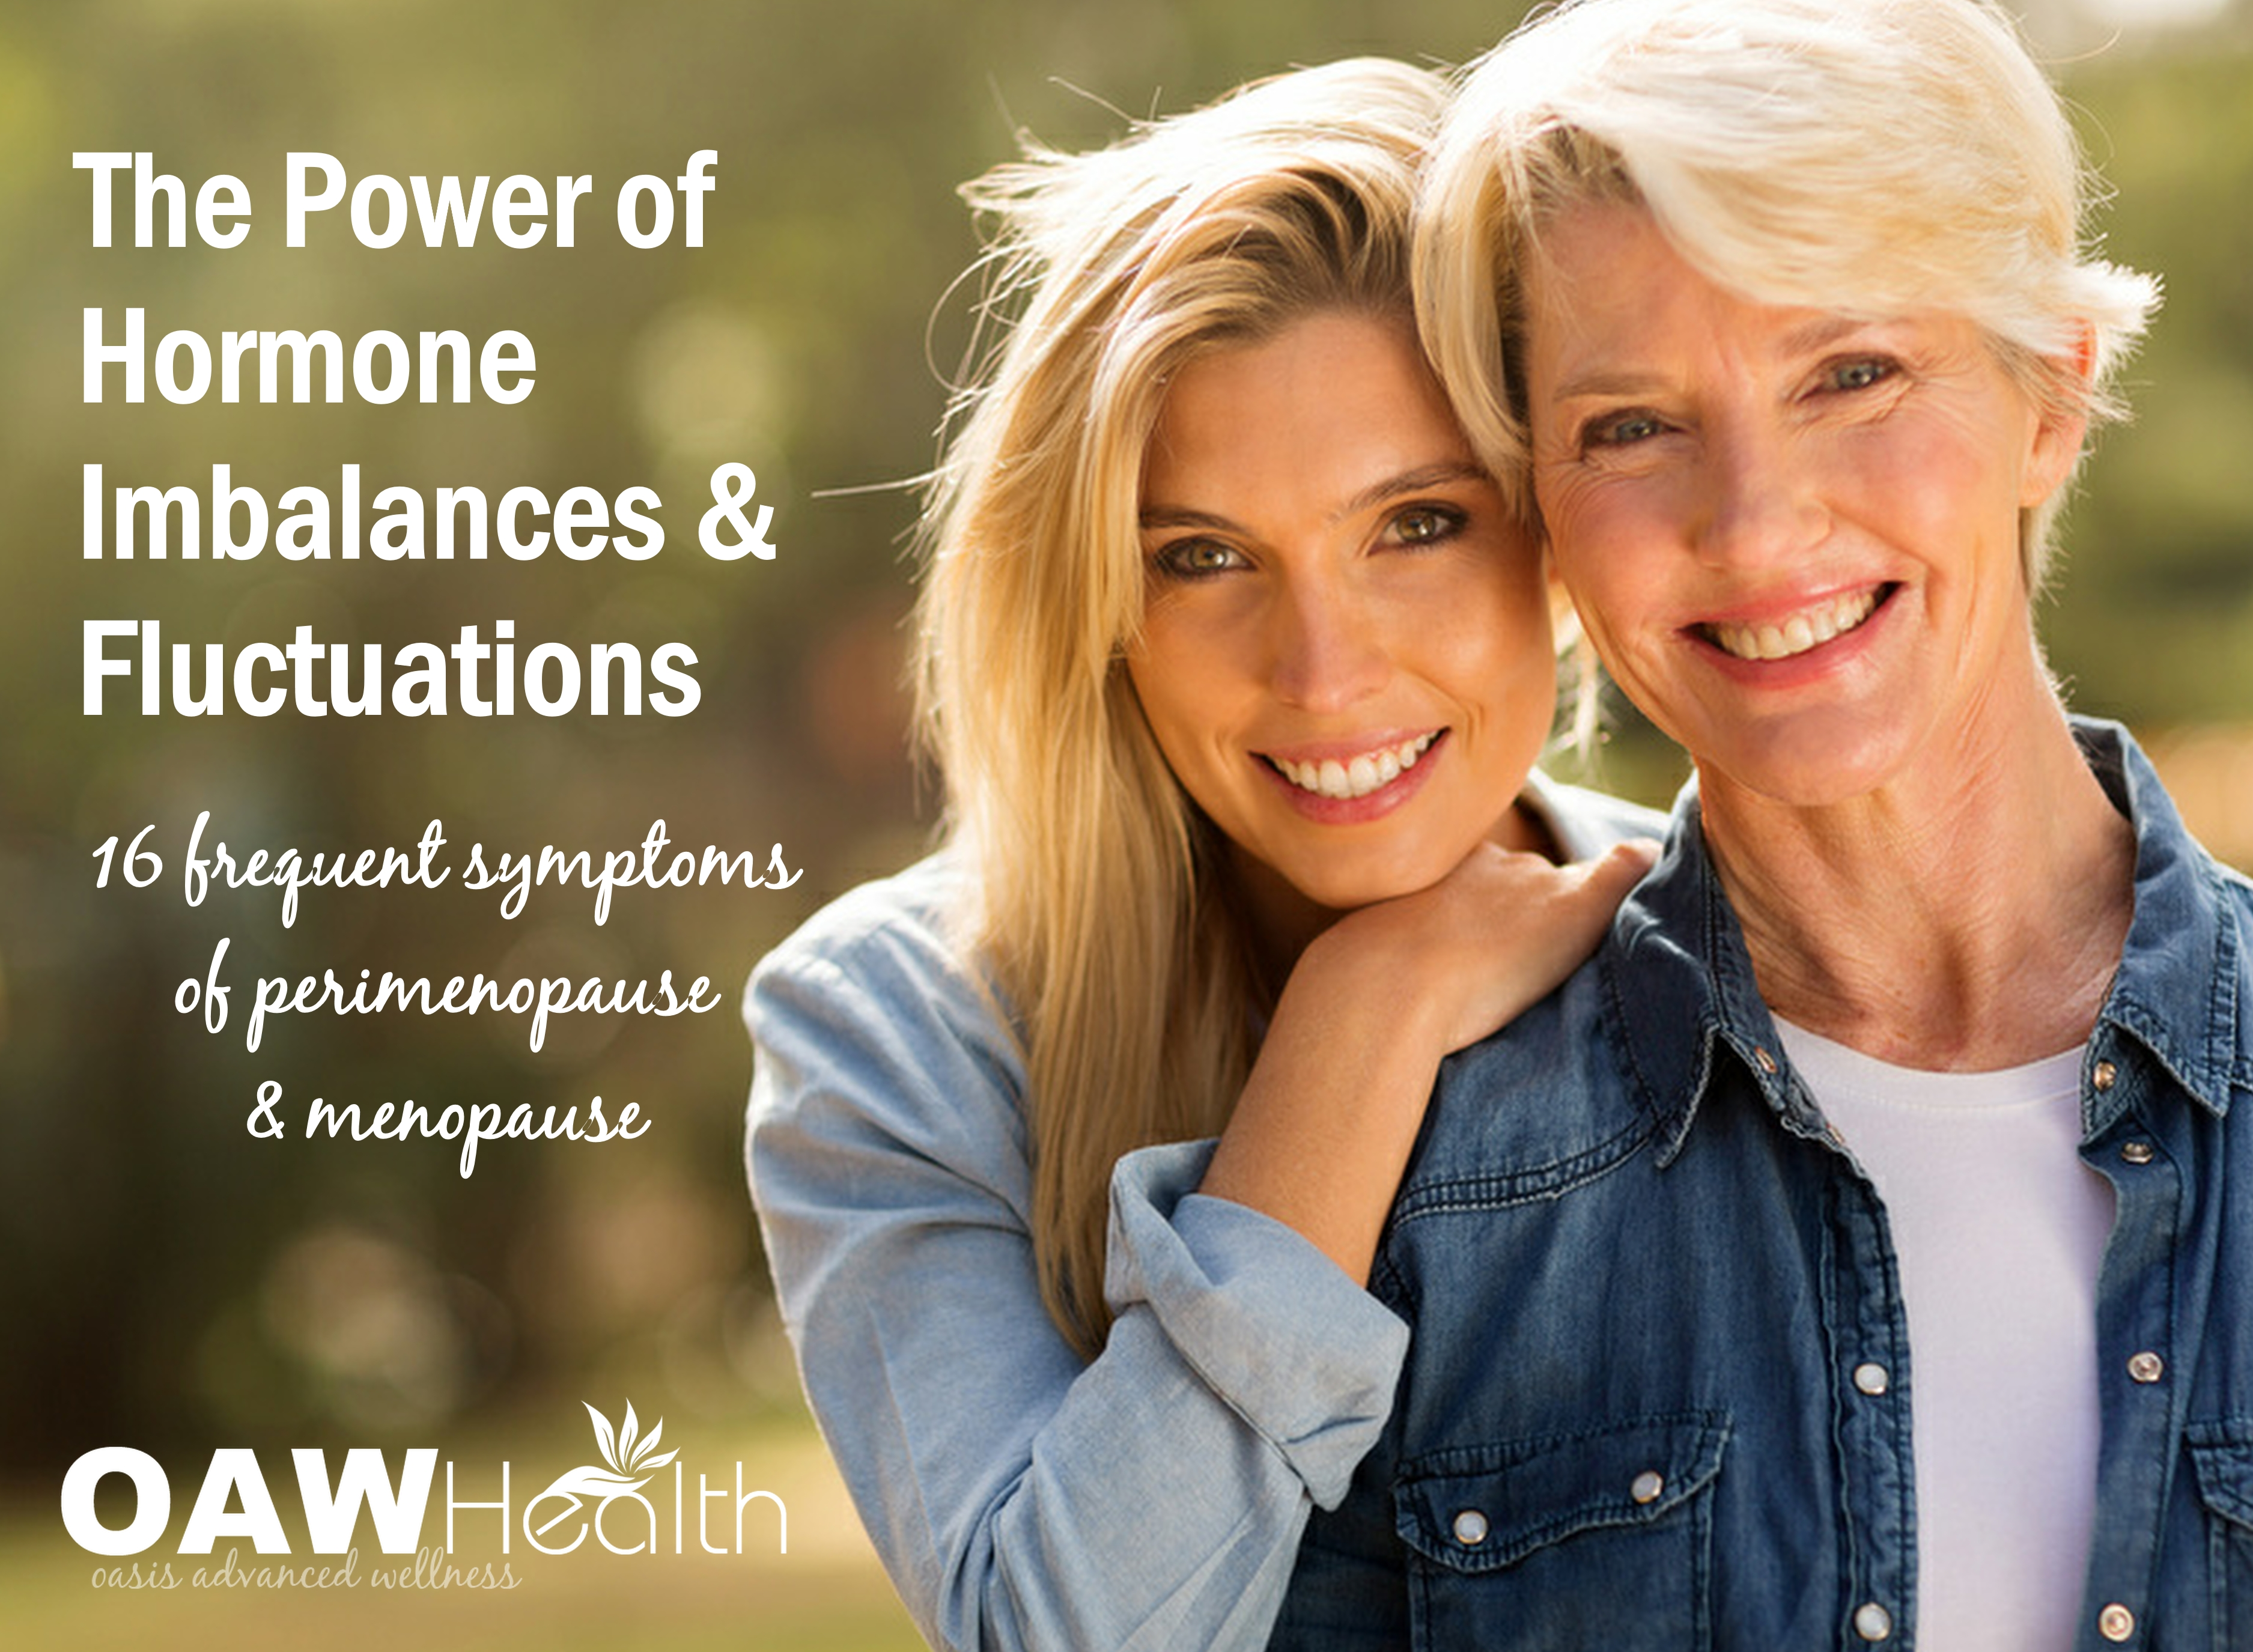 The Power of Hormone Imbalances & Fluctuations